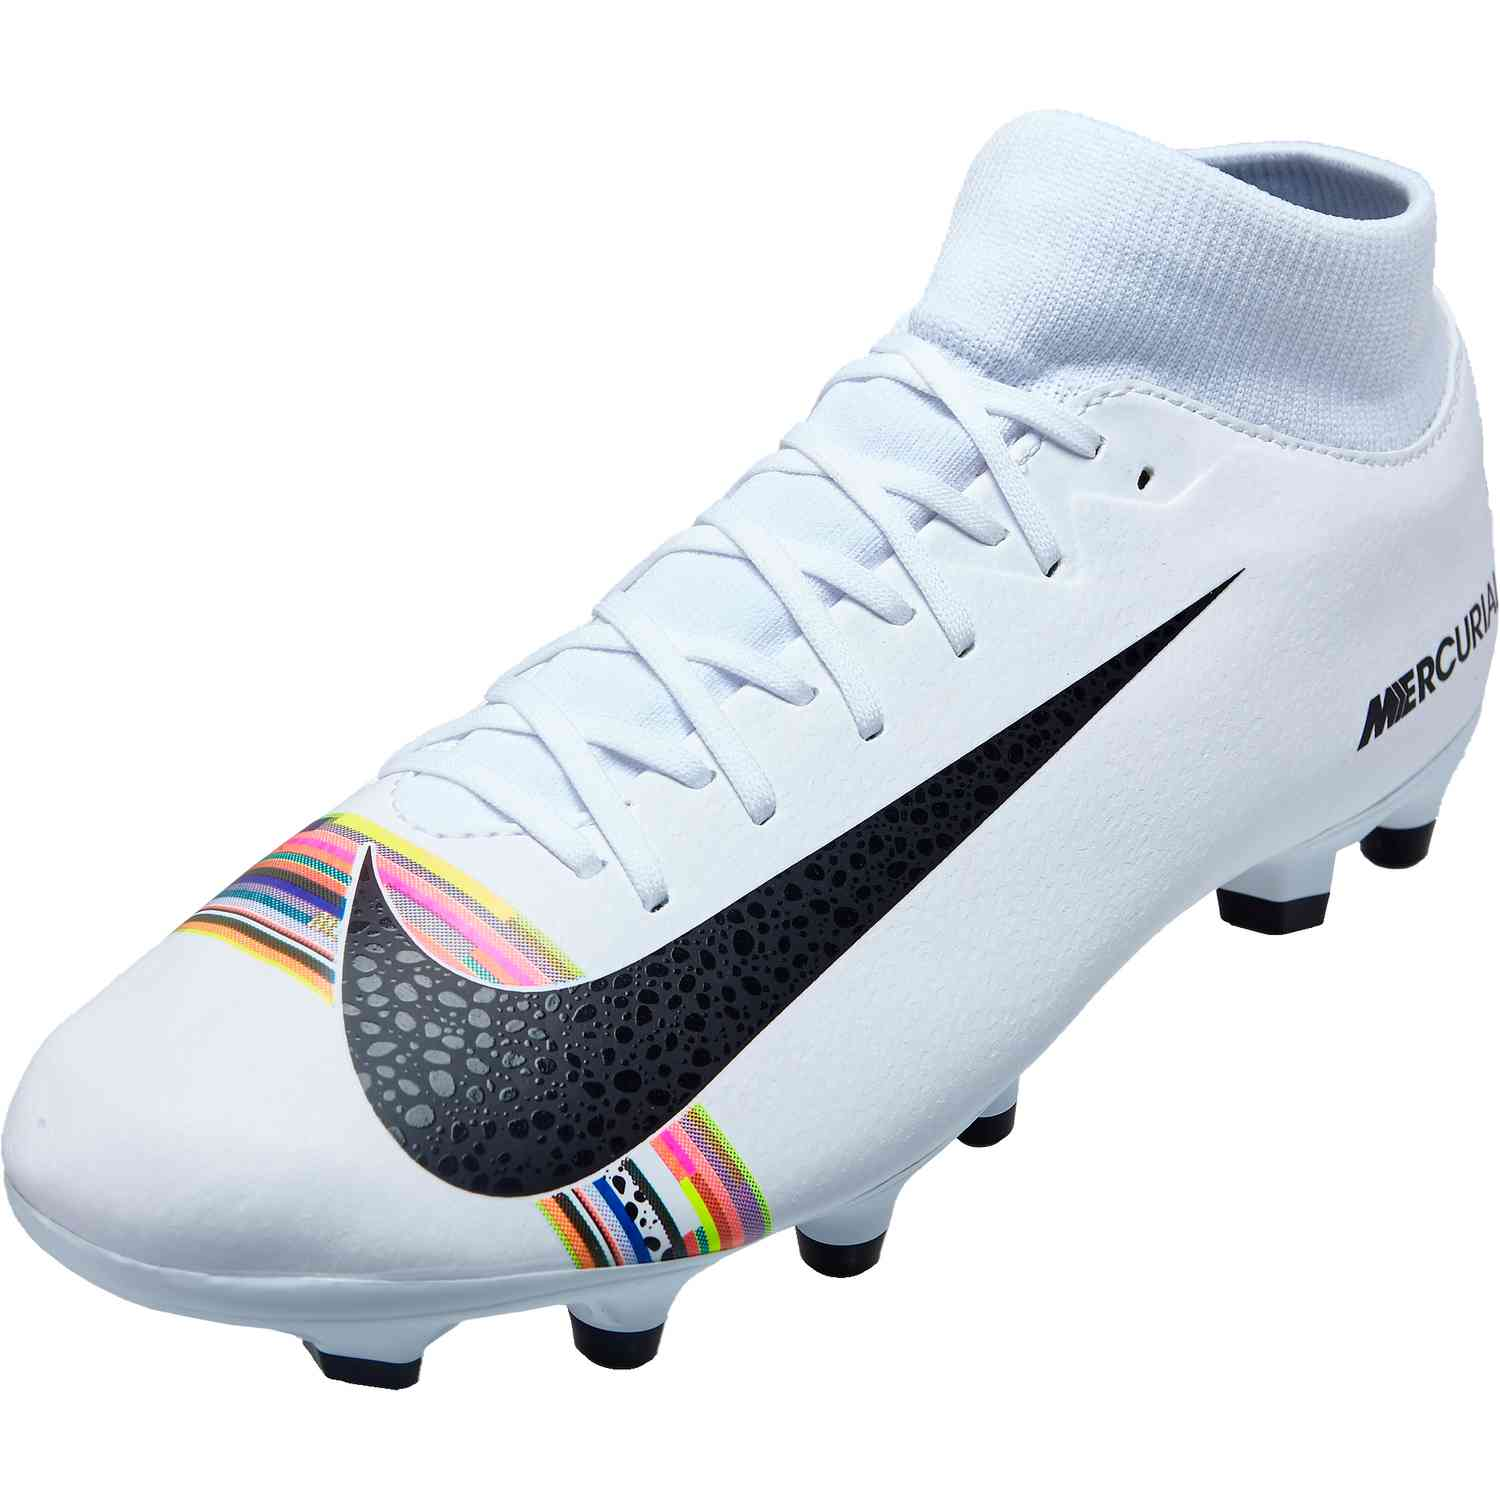 efd887ae2 Nike Mercurial Superfly 6 Academy FG - Level Up - SoccerPro